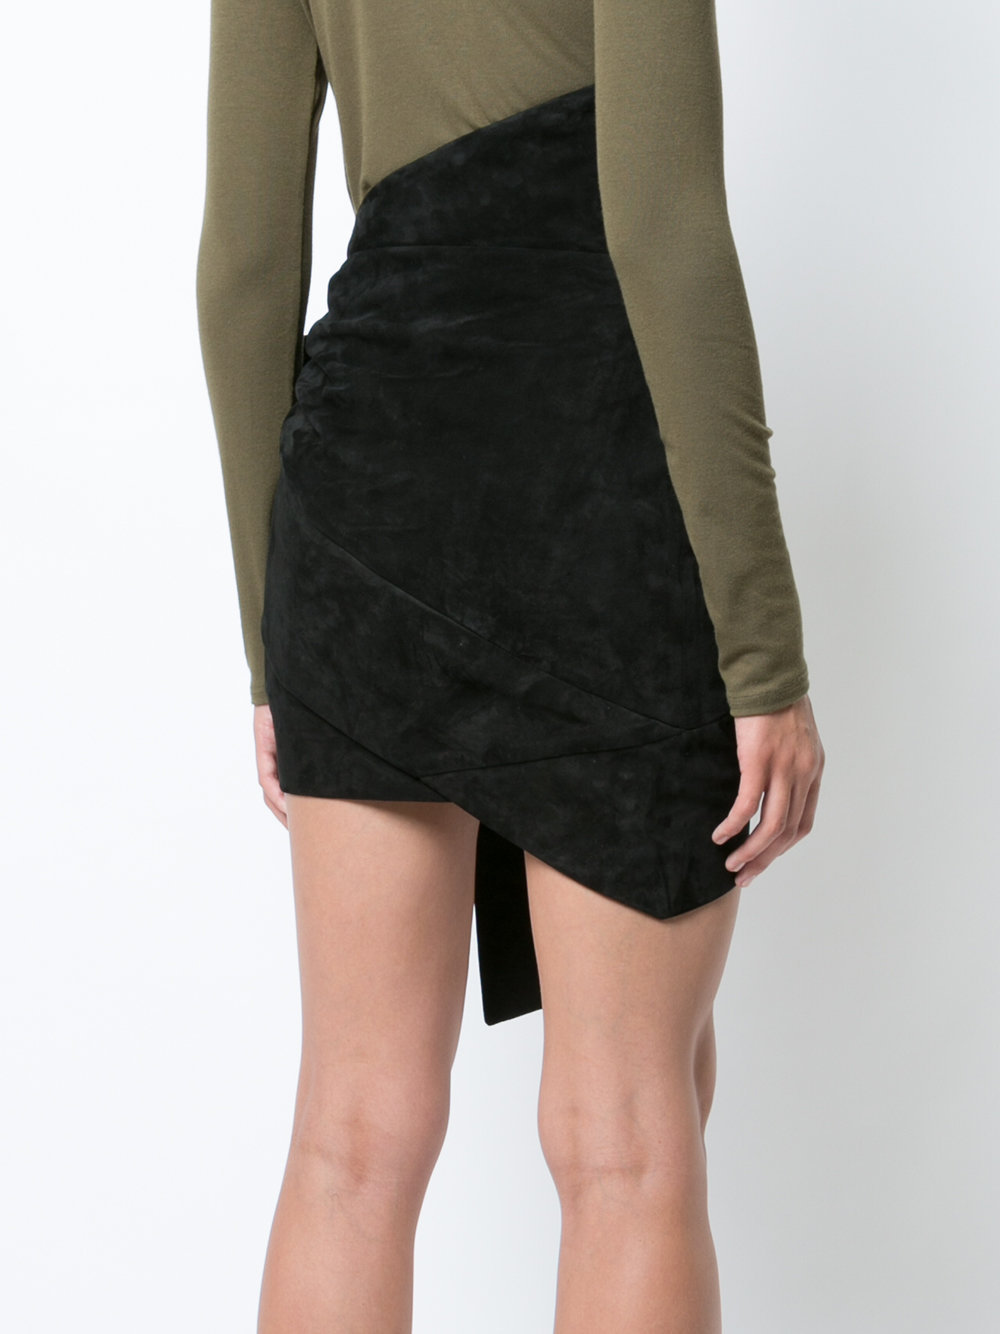 17-18AW WSL1176 DRAPED LEATHER MINI SKIRT WITH RIBBON TIE